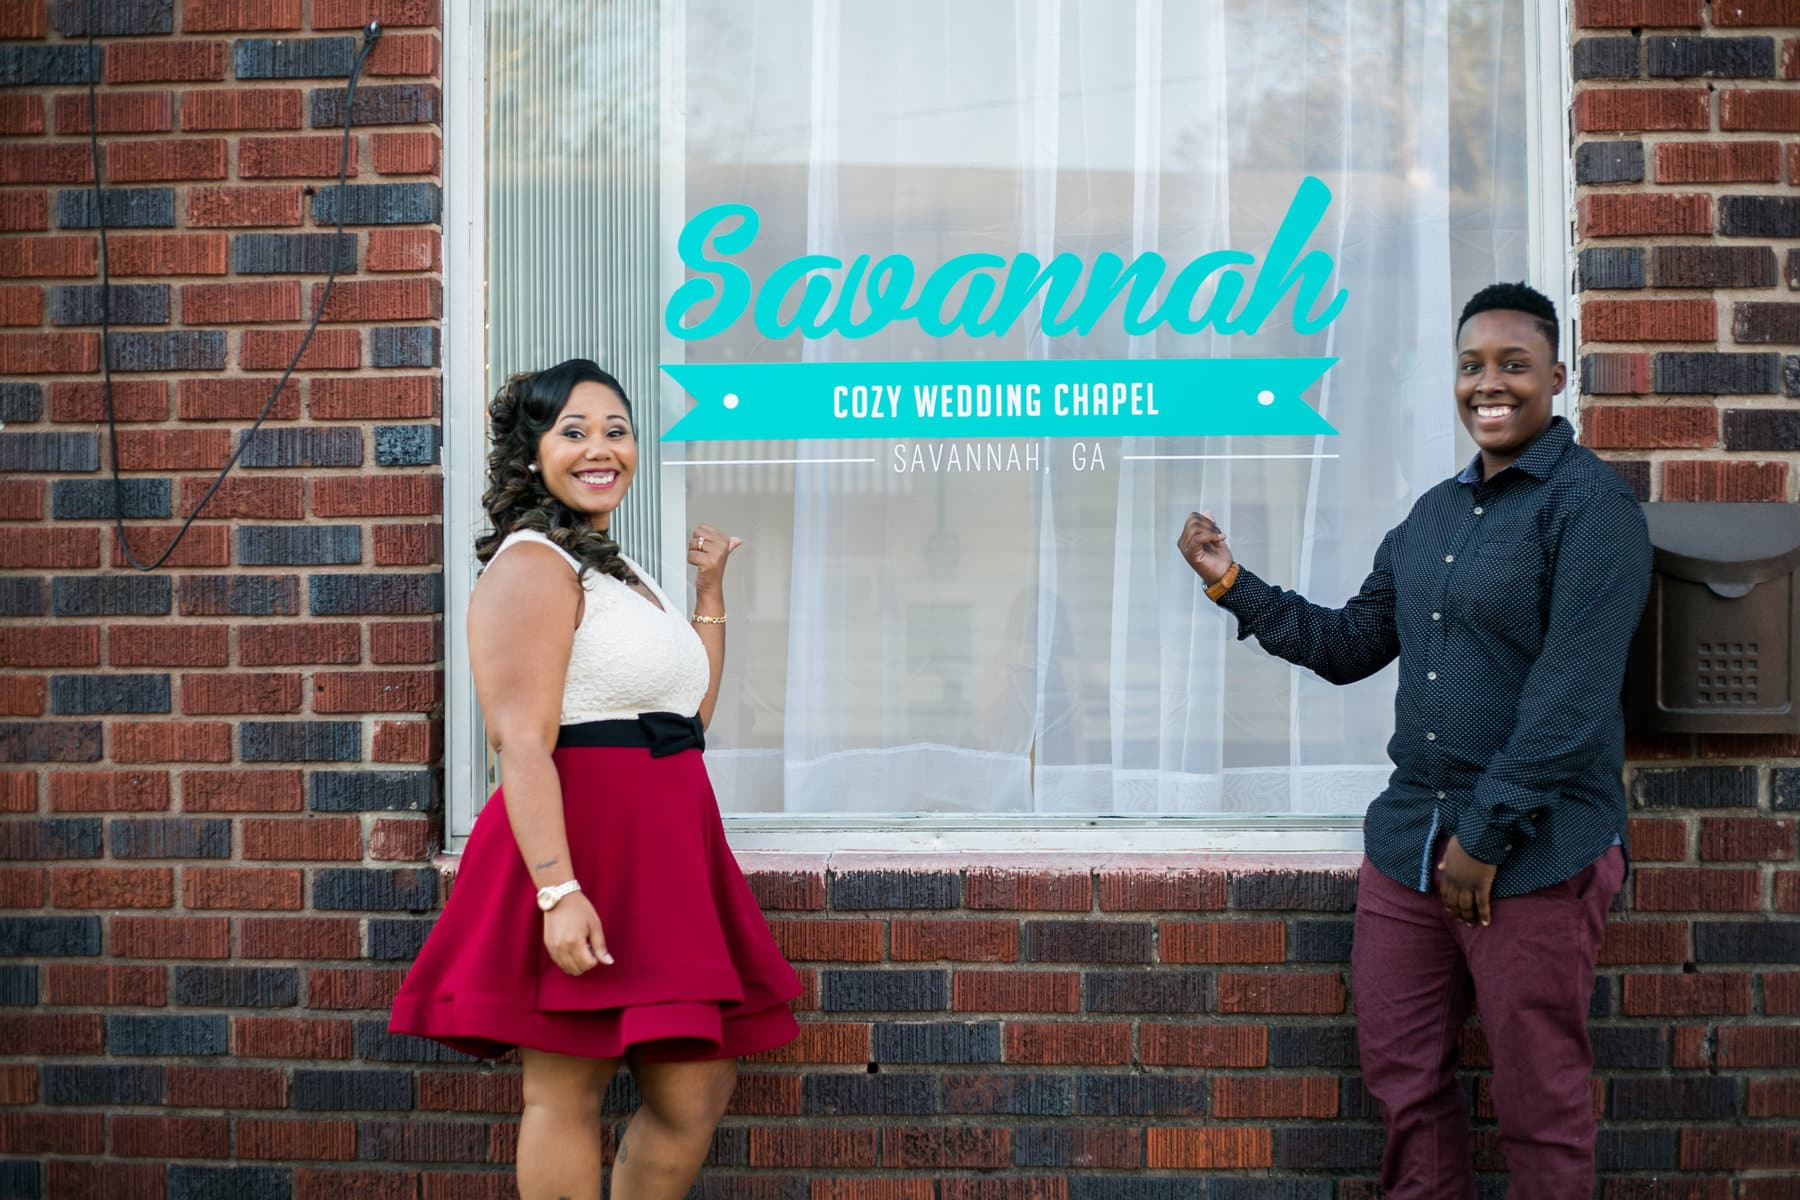 Savannah Cozy Chapel is located at 2421 Waters Avenue.